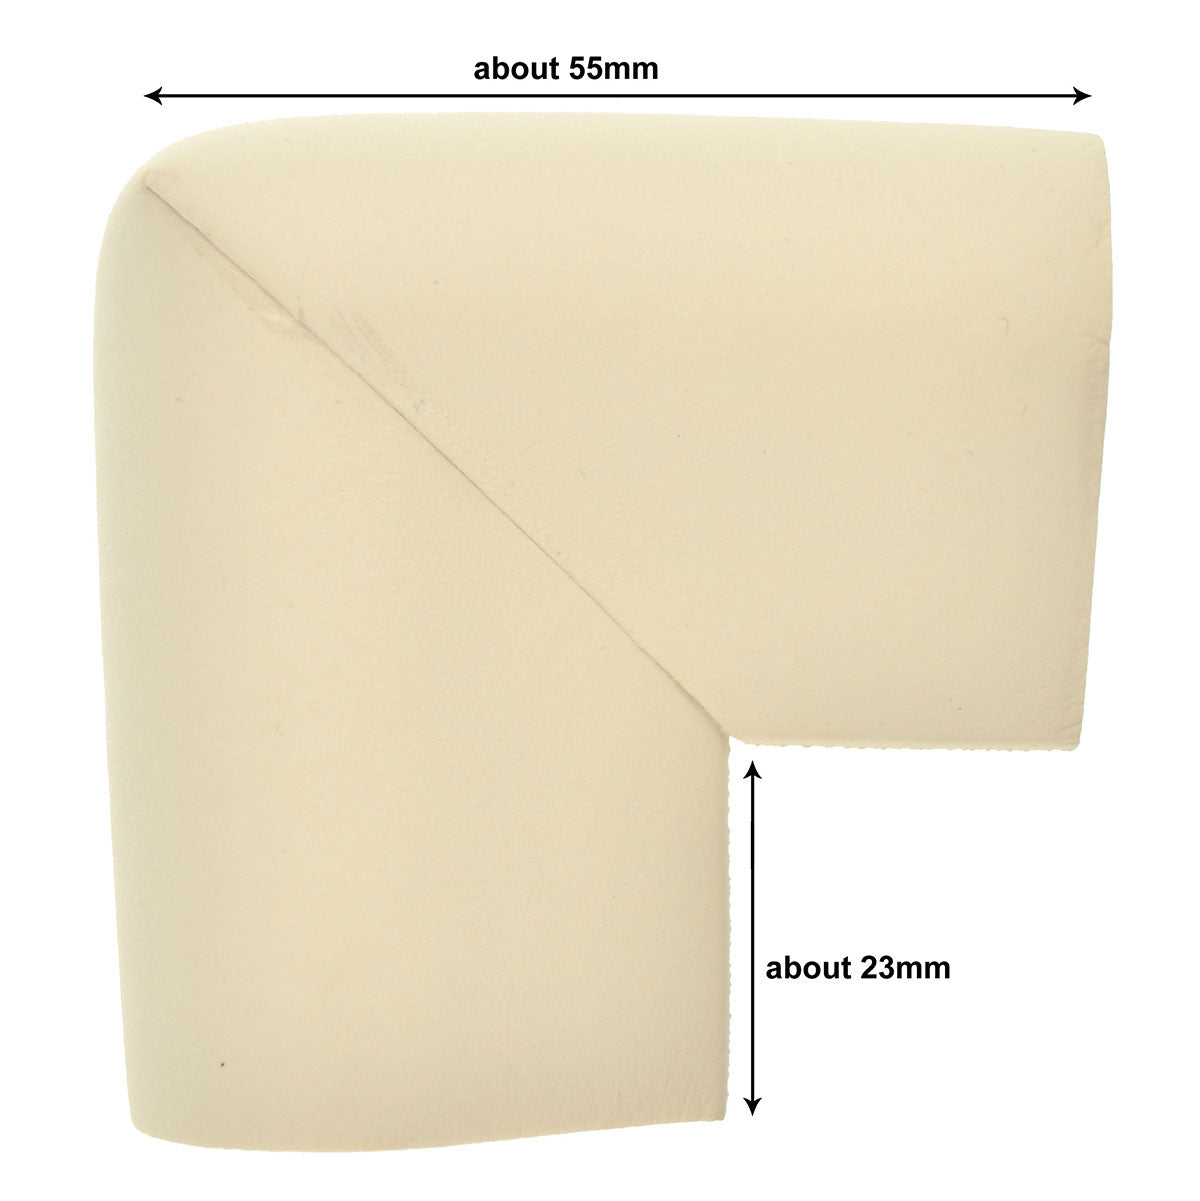 12 Pieces Beige U-Shaped Foam Corner Protectors